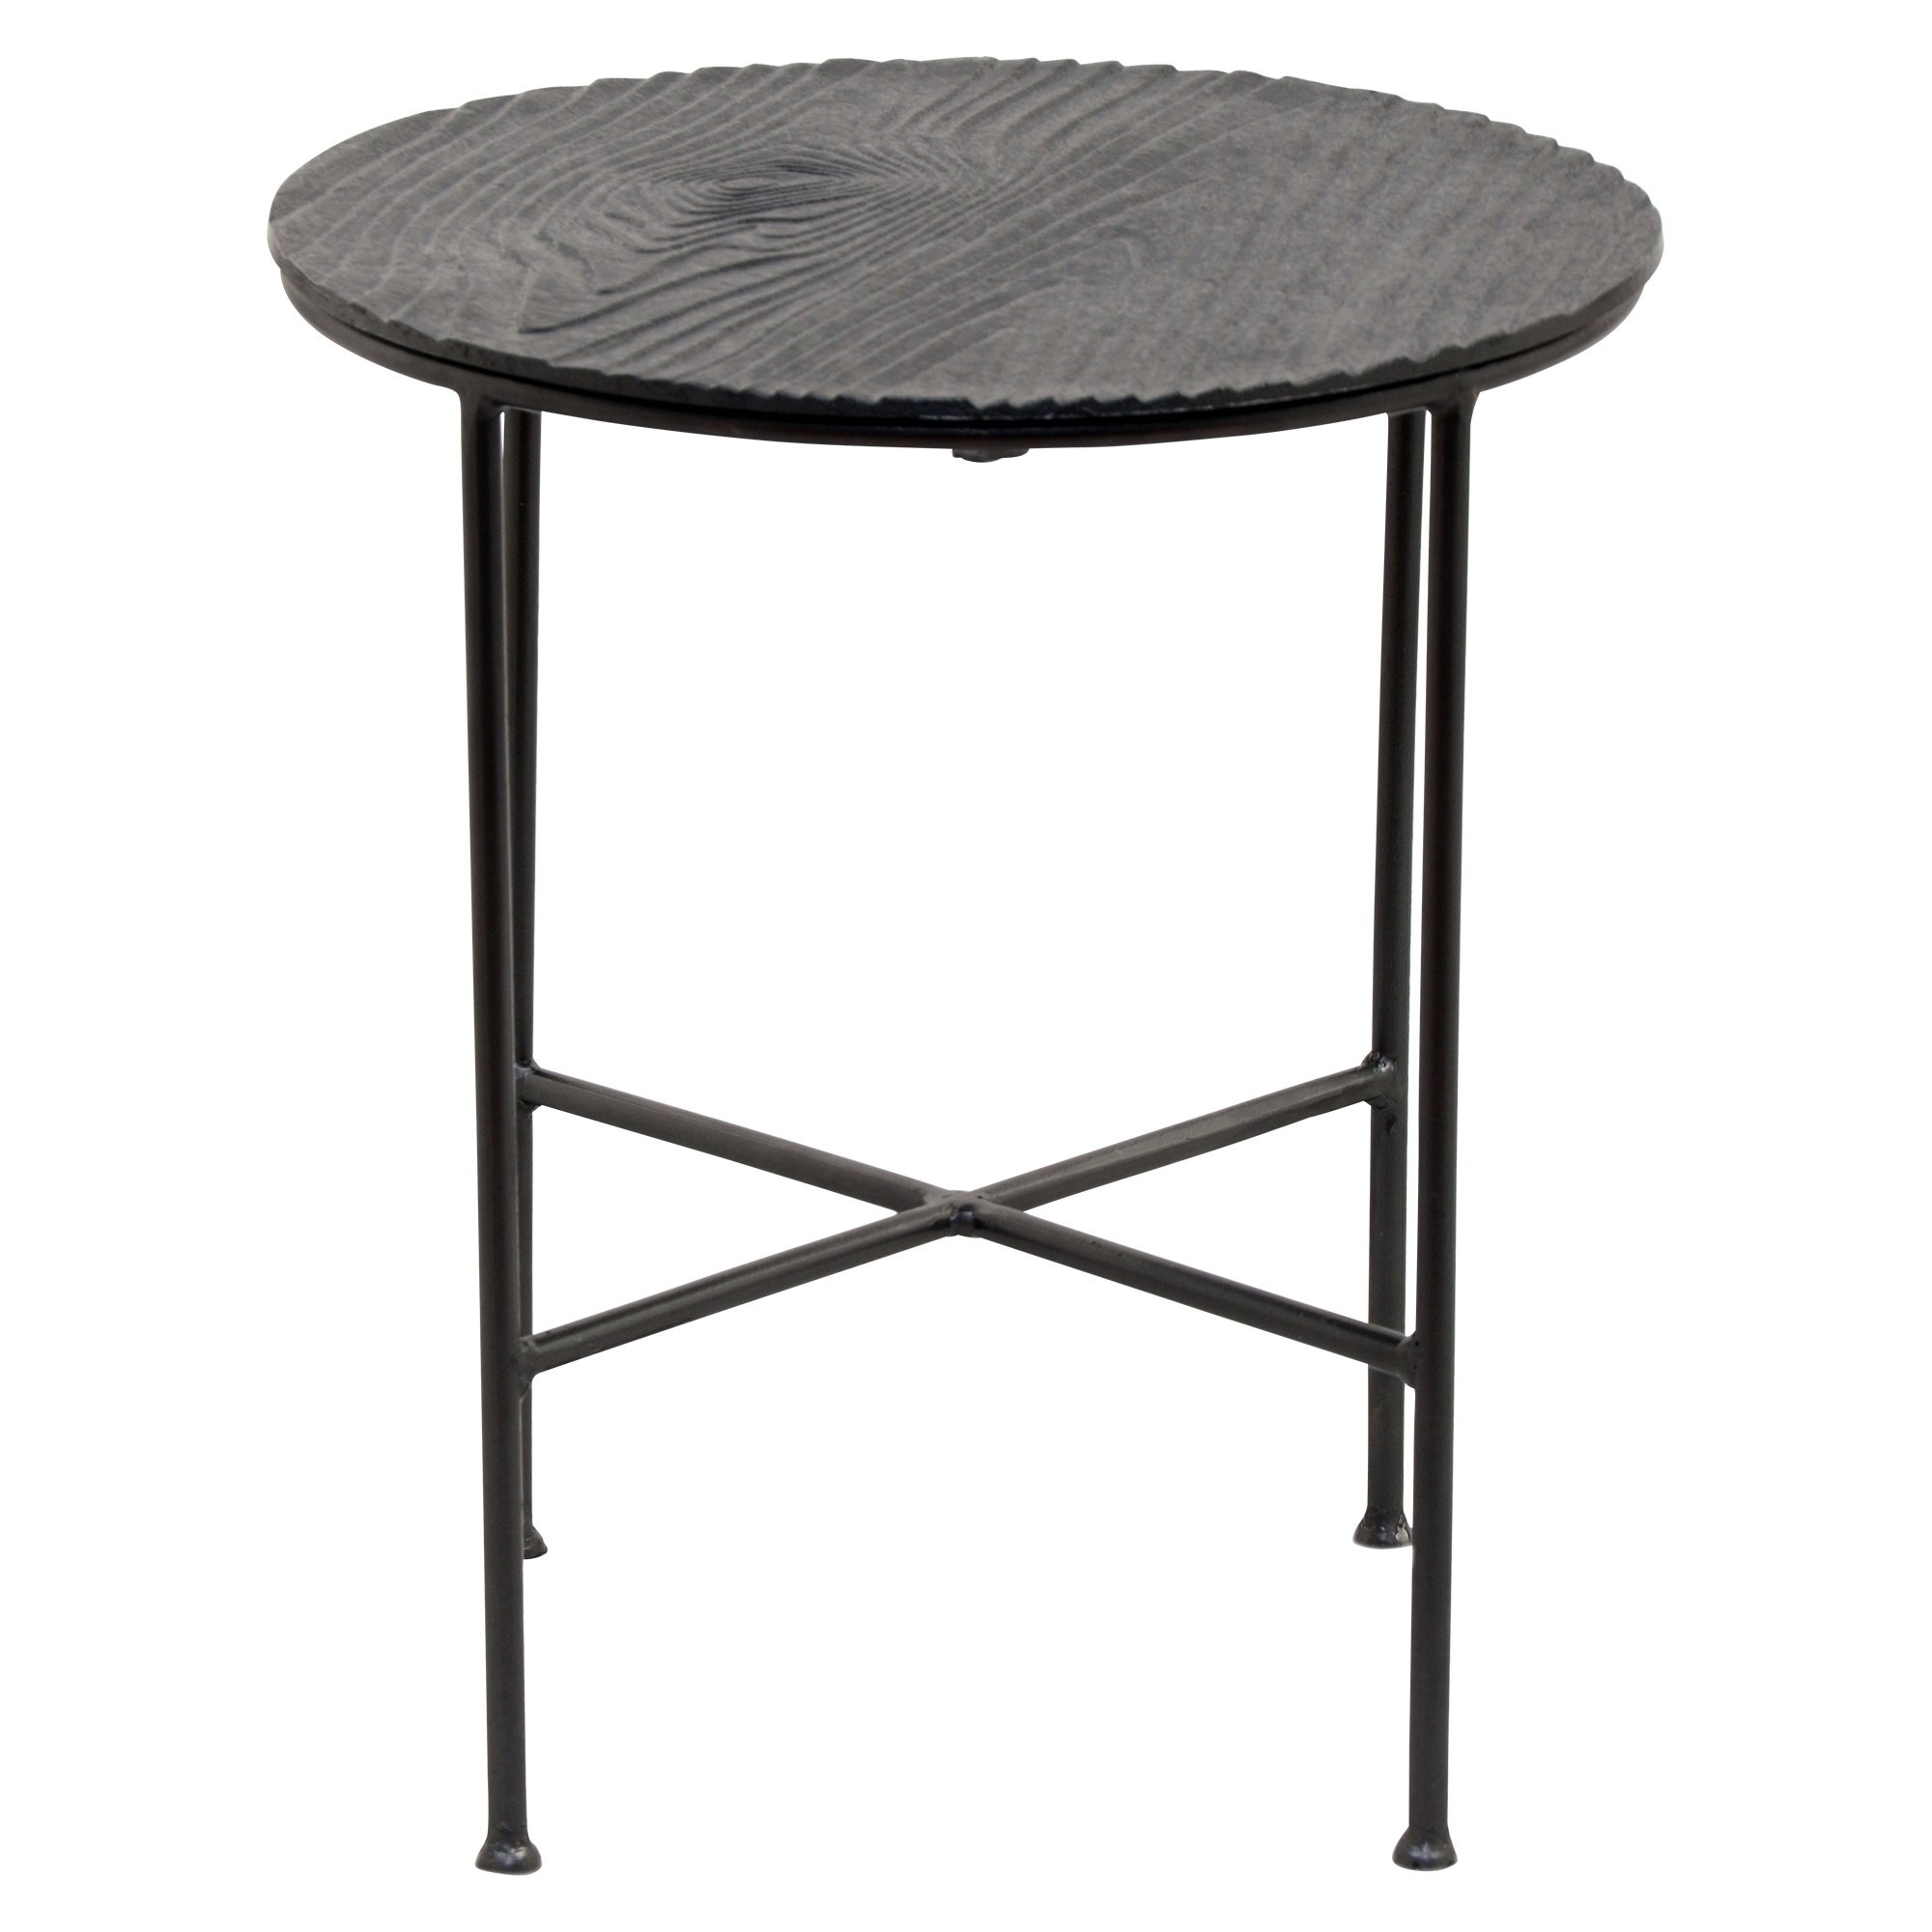 Preferred Bale Rustic Grey Round Cocktail Tables With Storage Pertaining To Shop Renwil Bale Grey Aluminum Round Accent Table – Free Shipping (View 14 of 20)